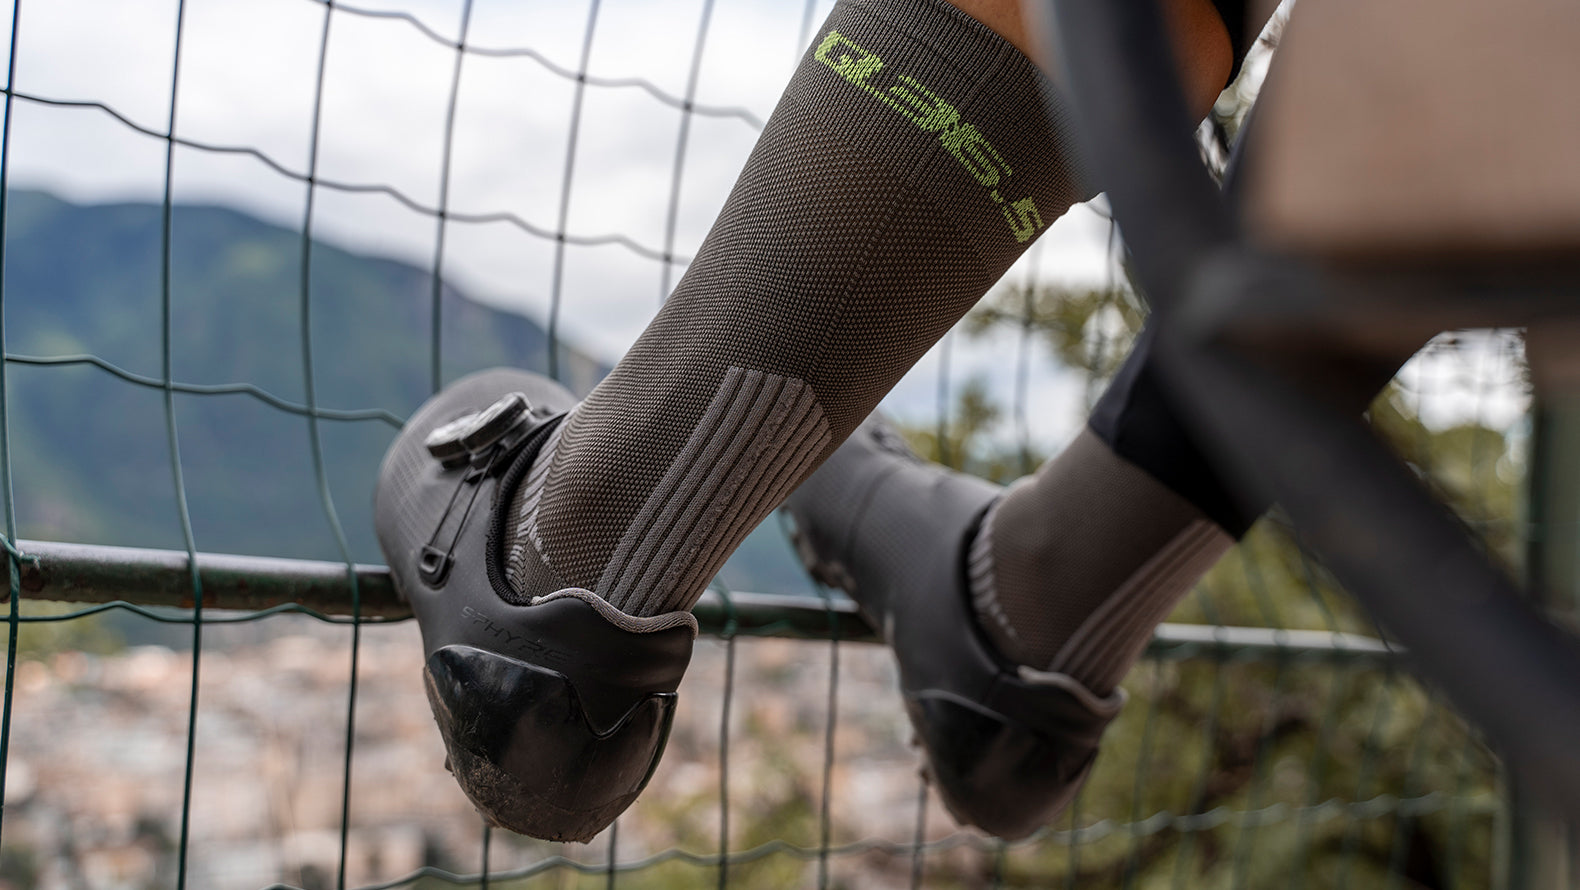 Q36.5 Adventure Insulation Cycling Socks for riding in mild weather conditions.